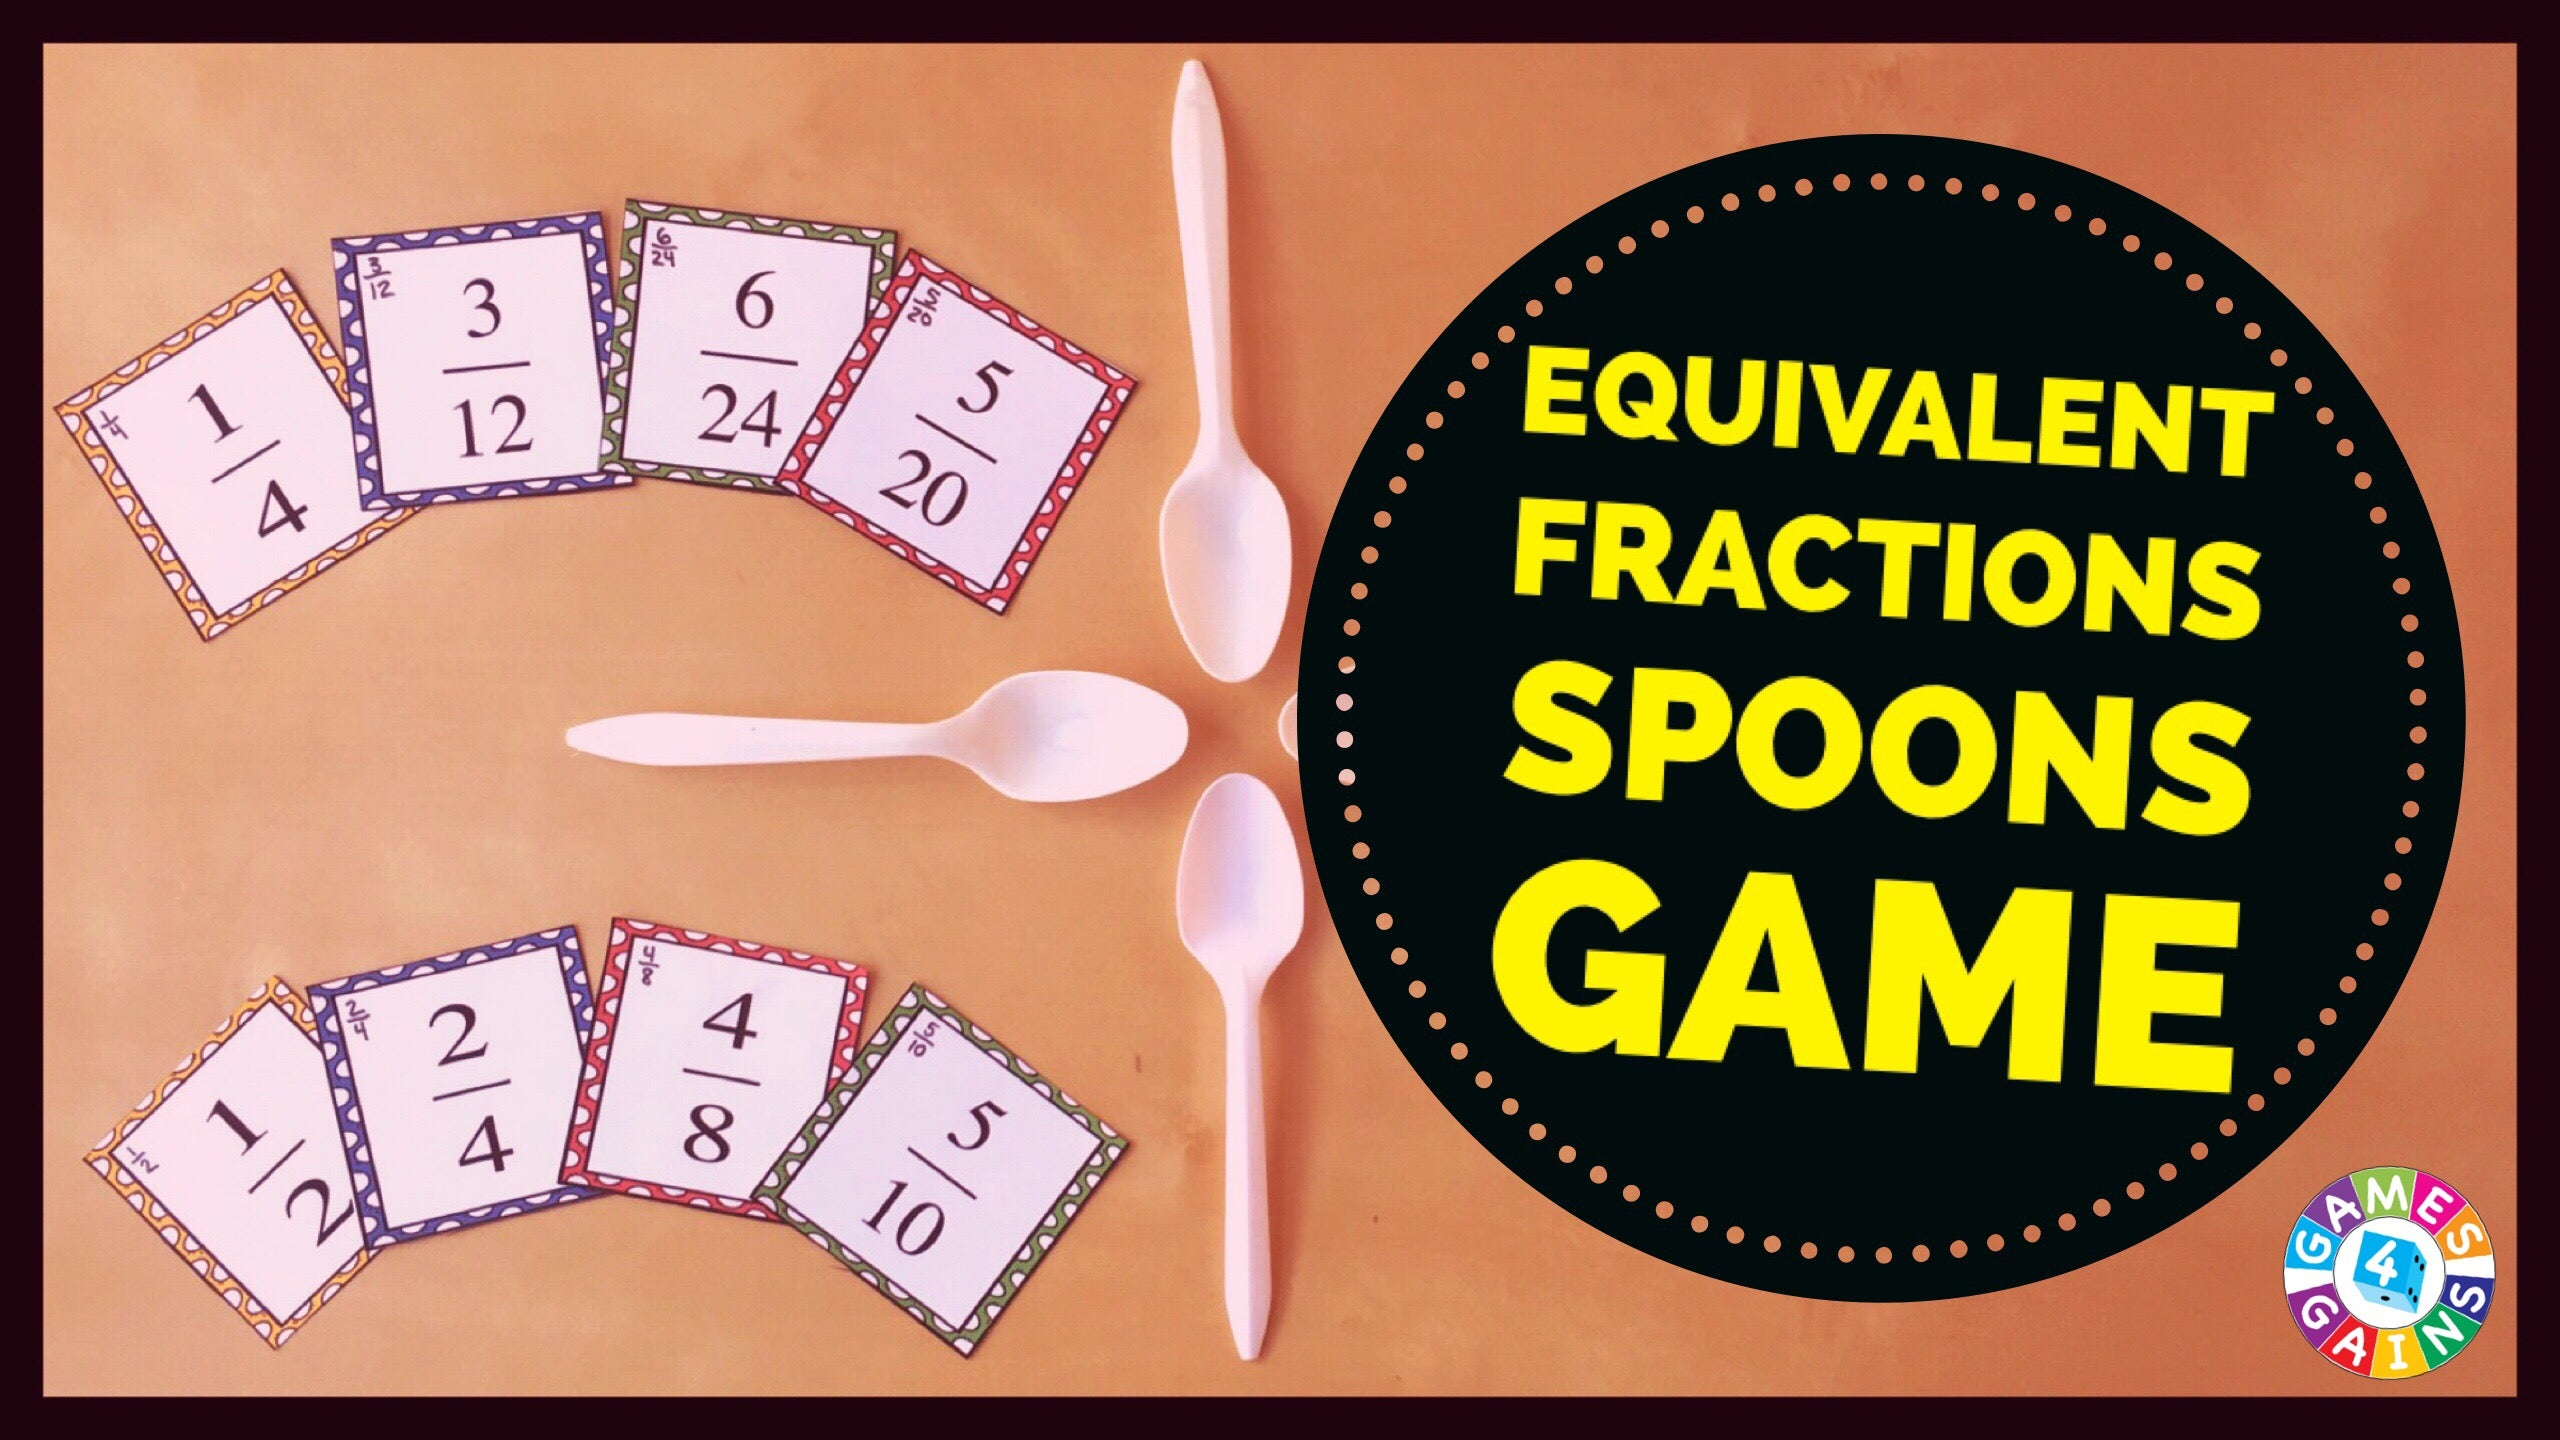 Equivalent Fractions Game Of Spoons Games 4 Gains